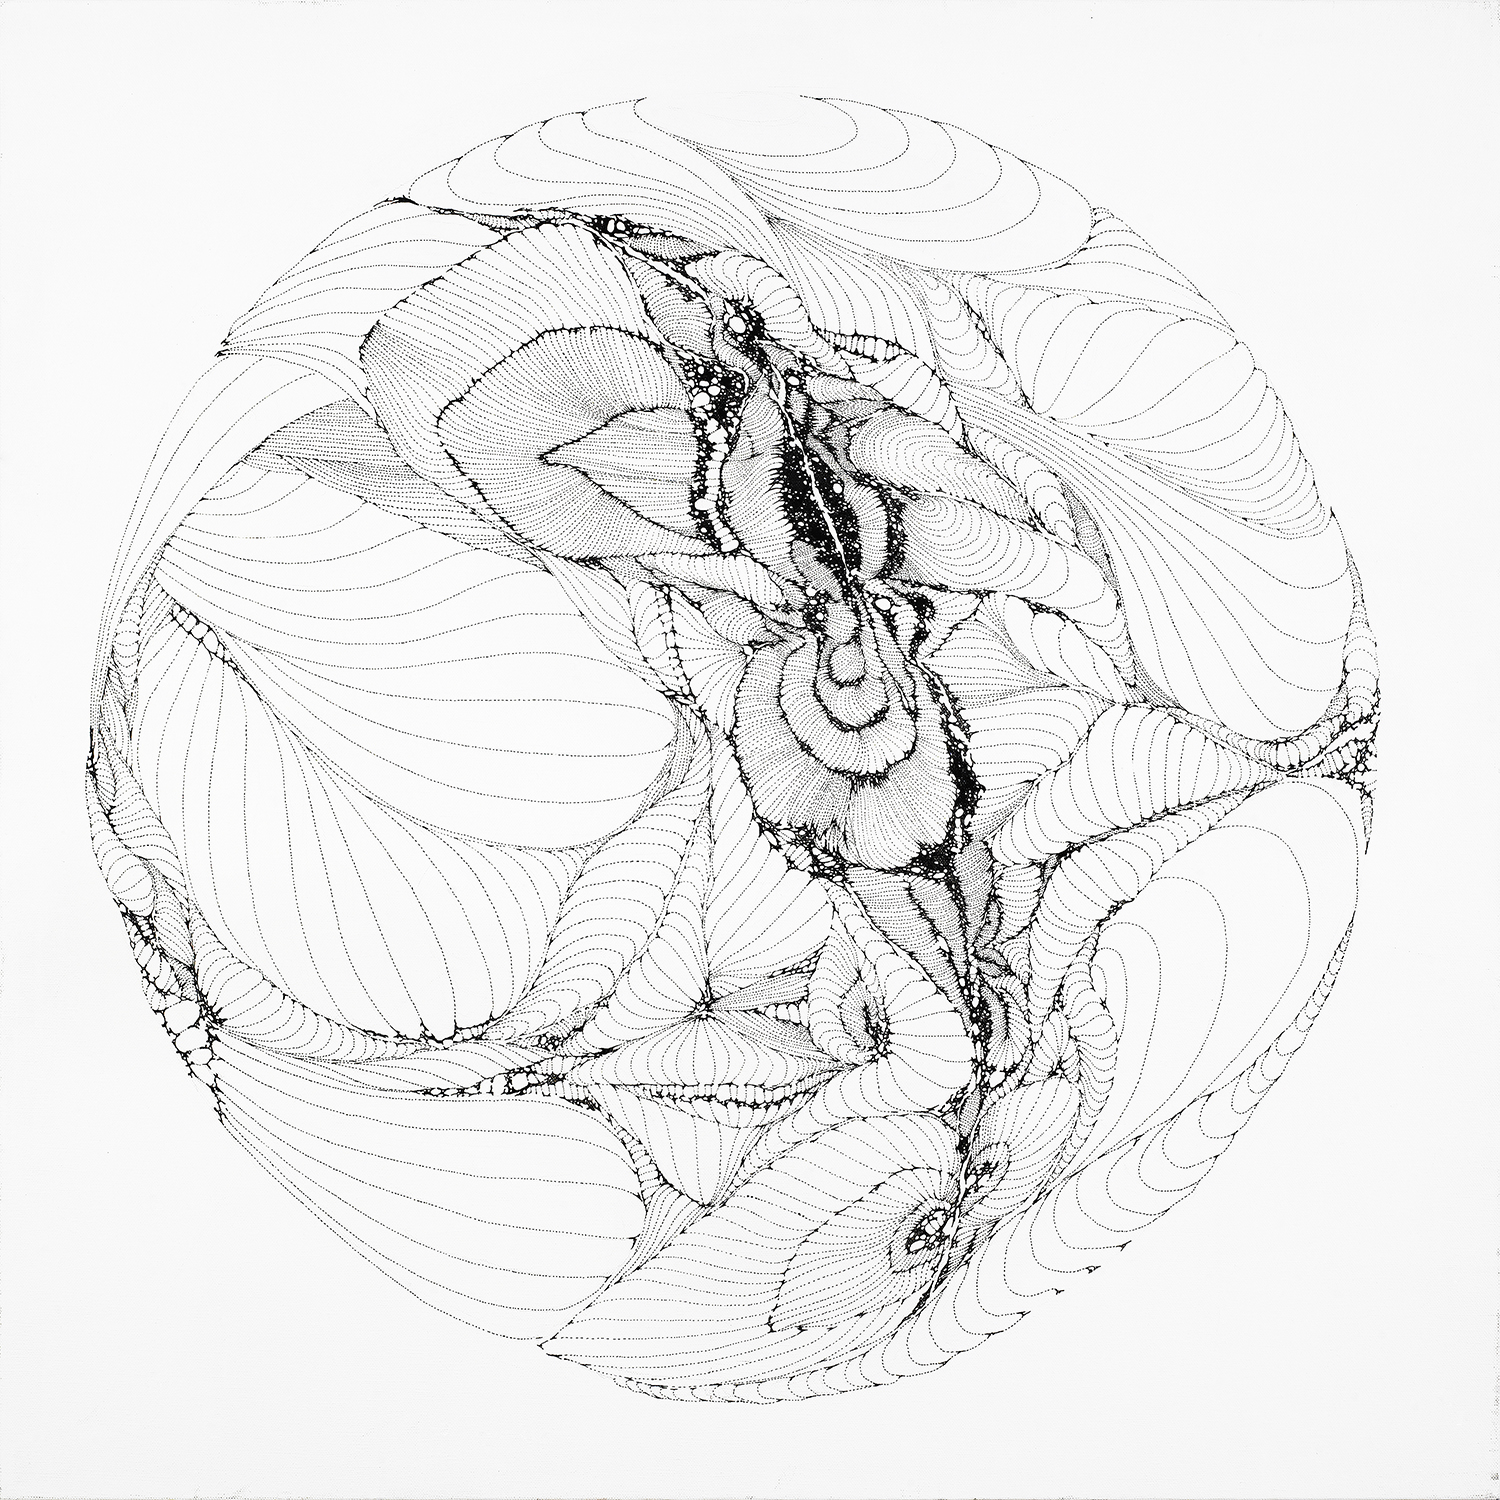 Form 01, ink on canvas, 30x30 in., 2012